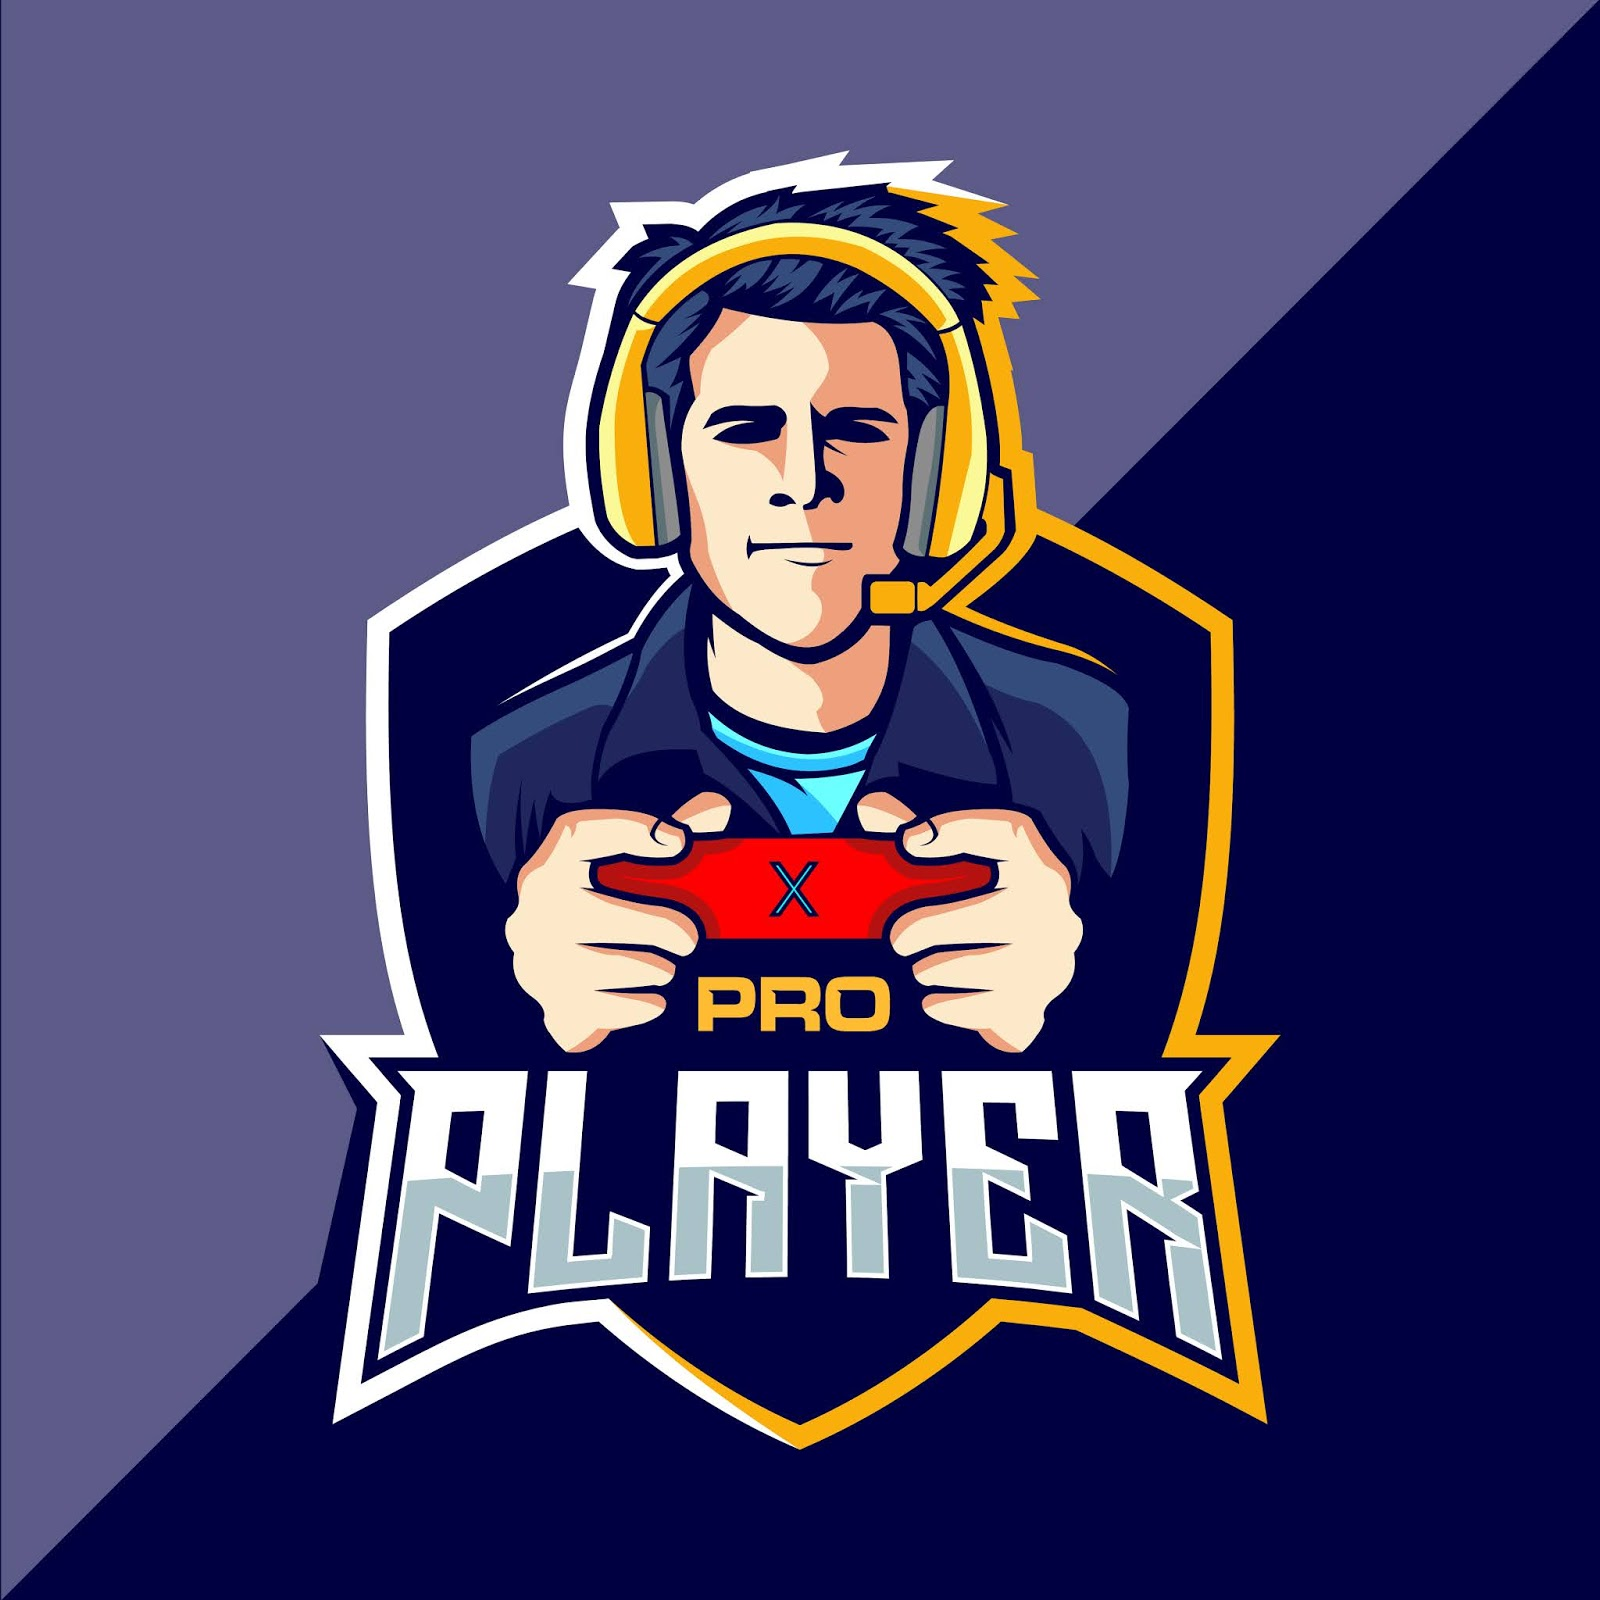 Pro Player Esport Game Logo Cool Free Download Vector CDR, AI, EPS and PNG Formats